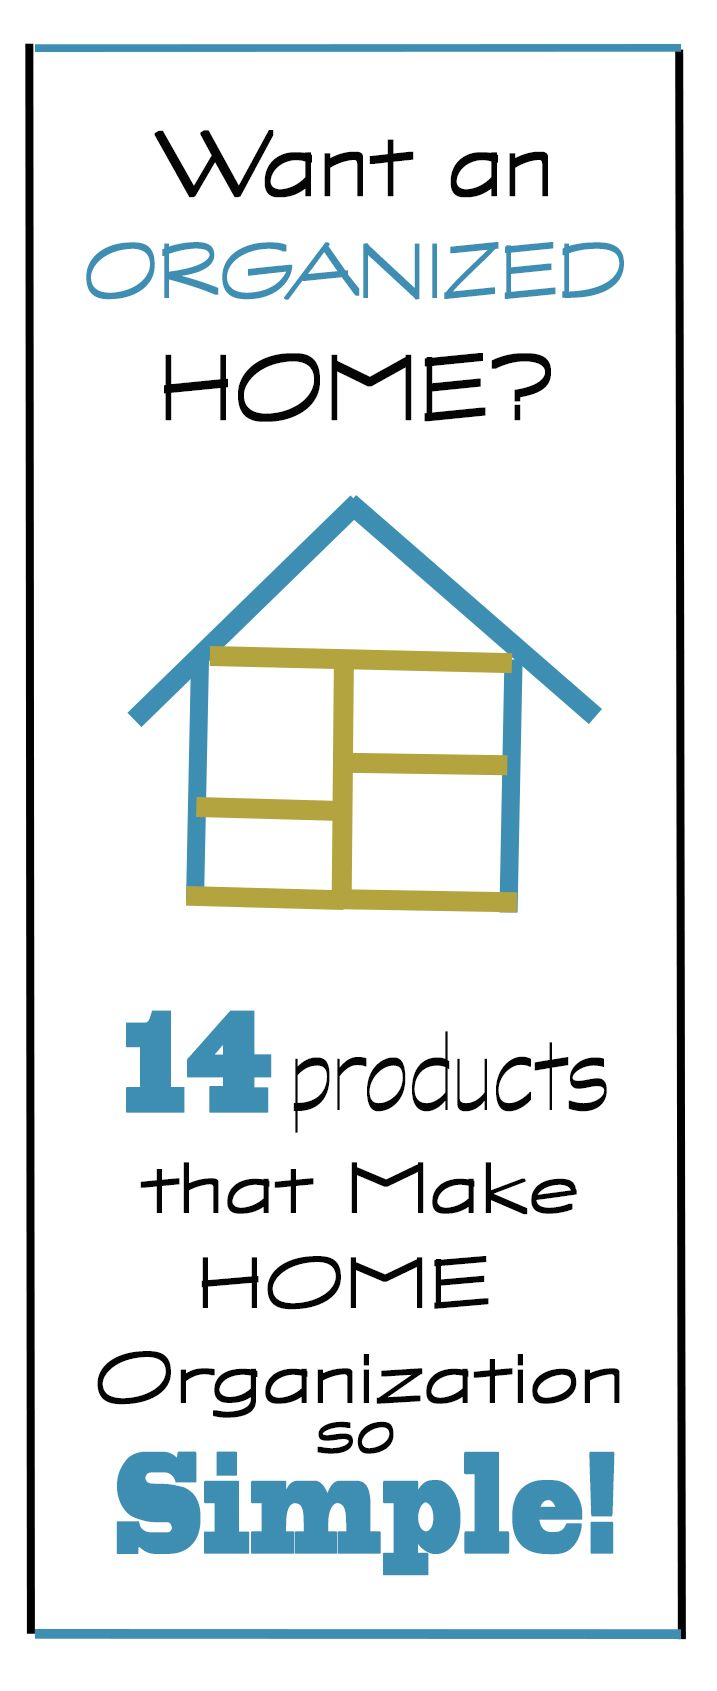 Was shocked most of these products are under $30!  Super affordable and helpful ideas for keeping the home organized!!